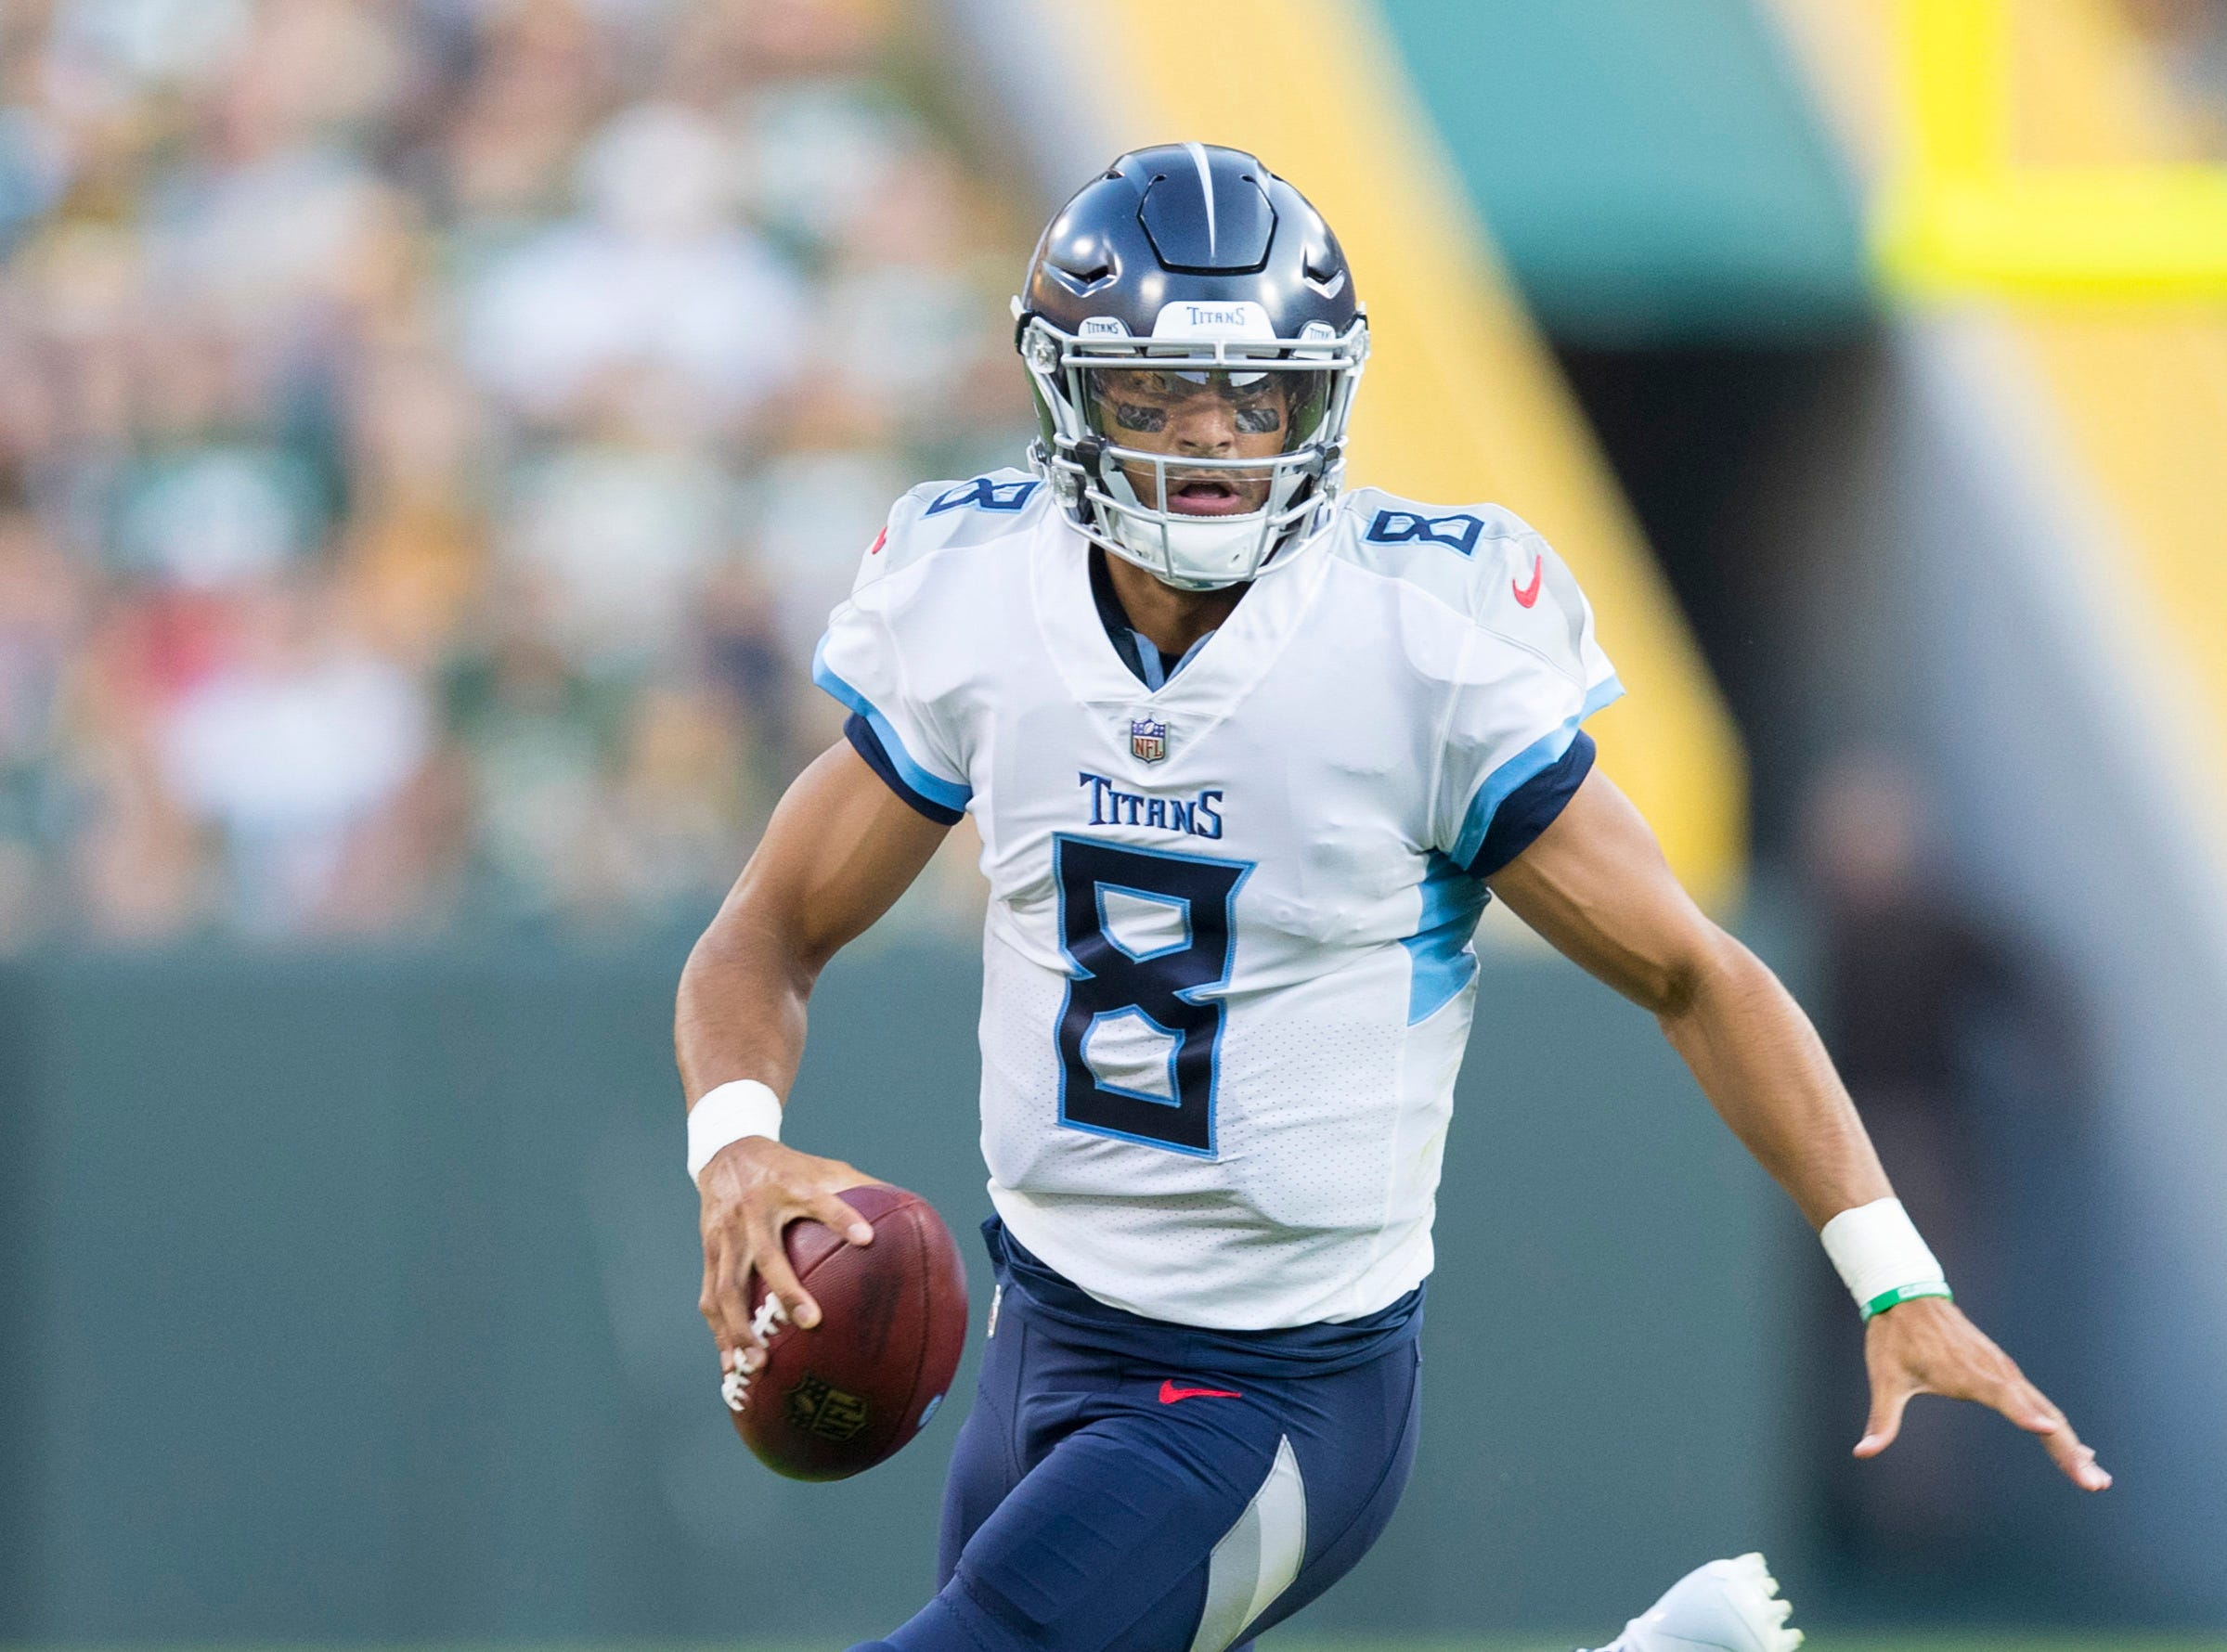 Aug 9, 2018; Green Bay, WI, USA; Tennessee Titans quarterback Marcus Mariota (8) scrambles with the football during the first quarter against the Green Bay Packers at Lambeau Field. Mandatory Credit: Jeff Hanisch-USA TODAY Sports